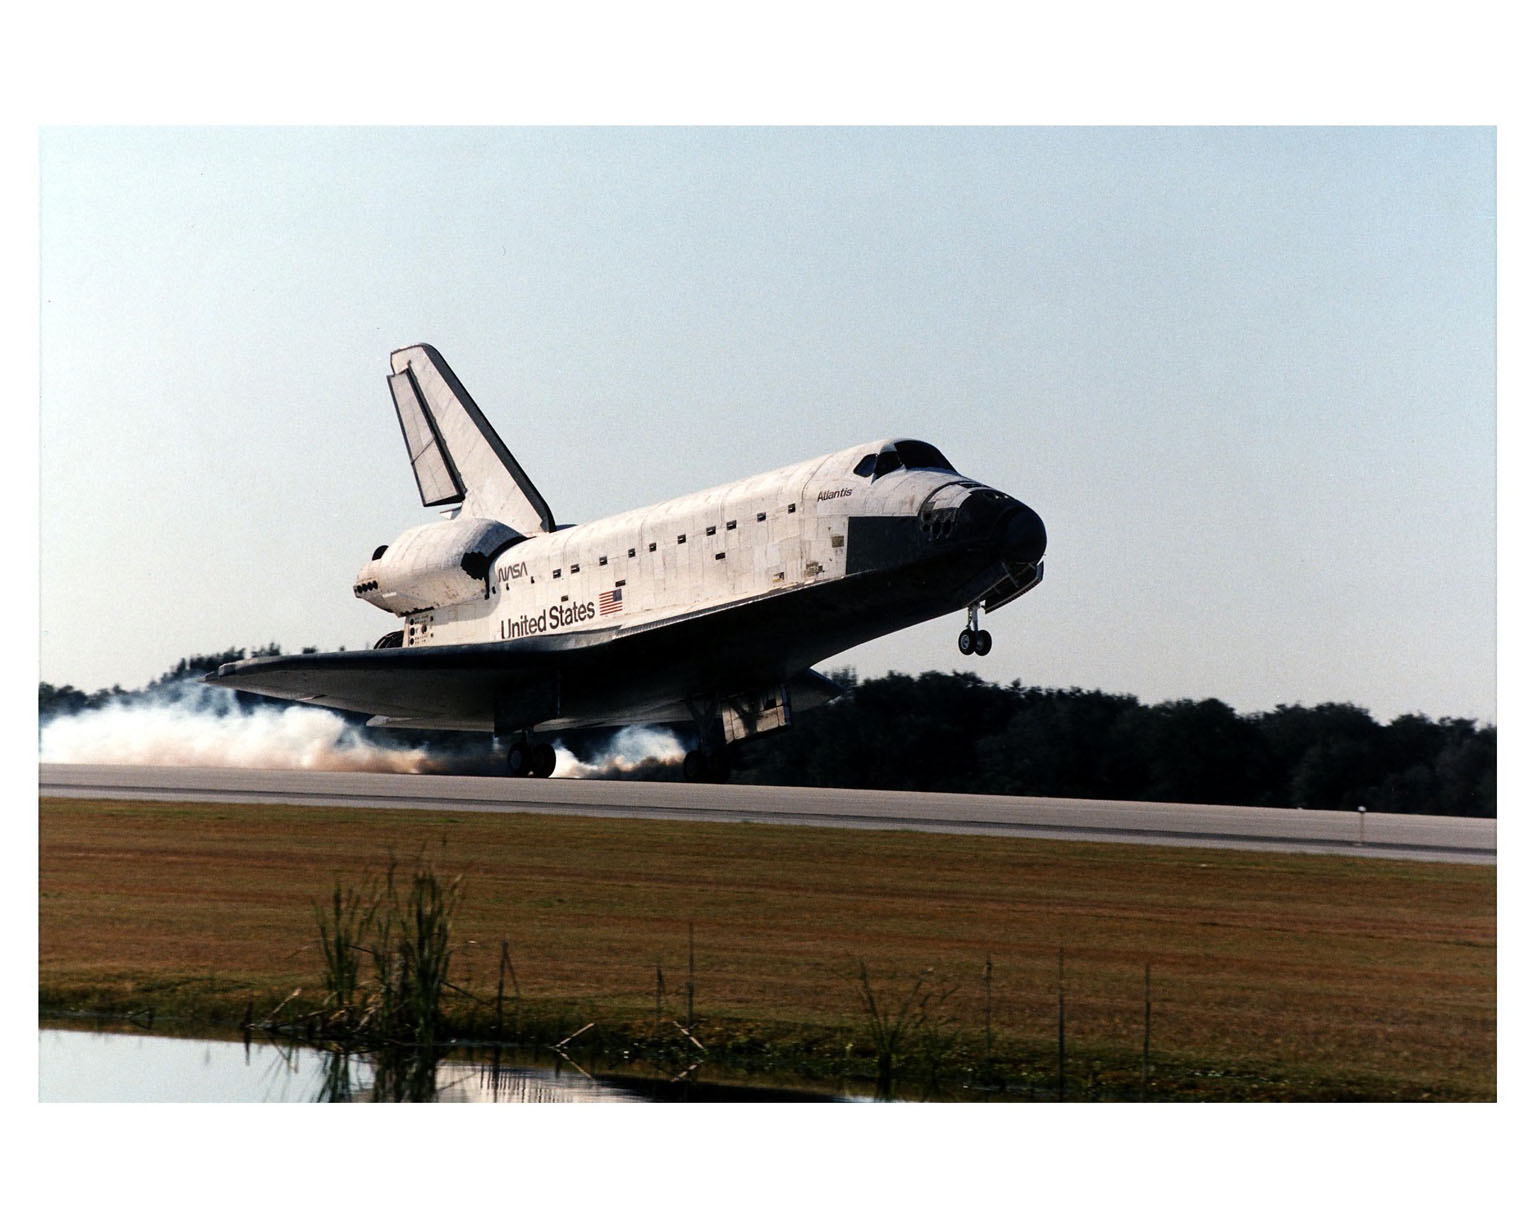 """The Space Shuttle orbiter Atlantis touches down on Runway 33 at 9:22:44 a.m. EST Jan. 22 to conclude the fifth Shuttle-Mir docking mission and return NASA astronaut John Blaha to Earth after four months in space. Blaha was replaced by STS-81 Mission Specialist Jerry Linenger during the five days of docked operations. At main gear touchdown, the STS-81 mission duration was 10 days, 4 hours, 55 minutes. This was the 34th KSC landing in Shuttle history. Mission Commander Michael A. Baker flew Atlantis to a perfect landing, with help from Pilot Brent W. Jett, Jr. Other returning STS-81 crew members are Mission Specialists John M. Grunsfeld, Peter J. K. """"Jeff"""" Wisoff and Marsha S. Ivins. Atlantis also brought back experiment samples from the Russian space station for analysis on Earth, along with Russian logistics equipment"""